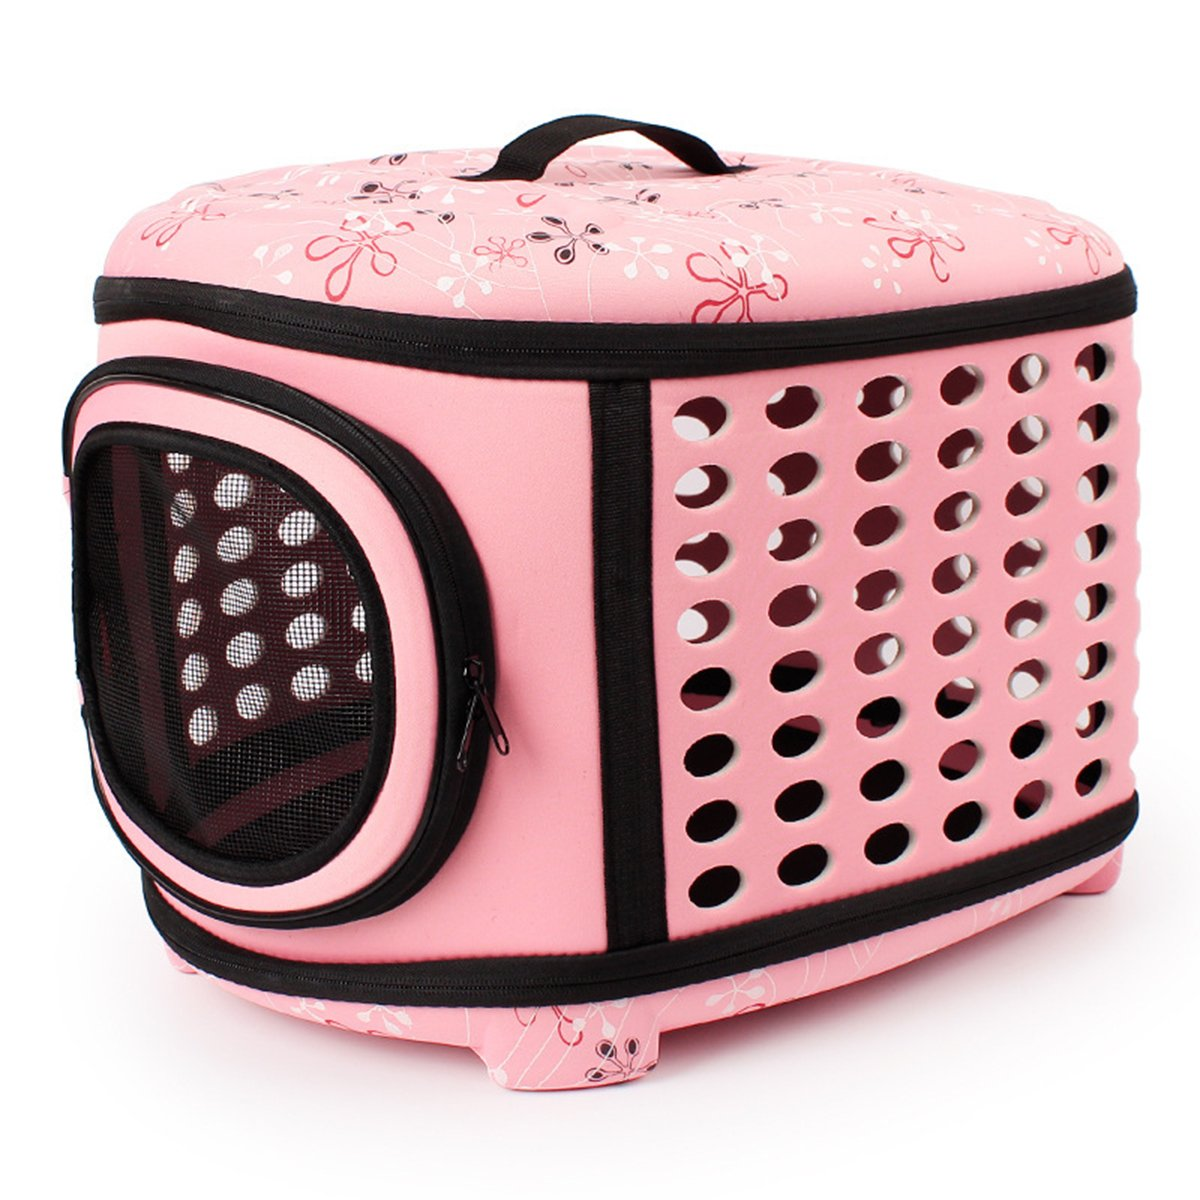 QZBAOSHU Pet Carriers Dog & Cat Portable Traveling Kennel Cats Small Dogs Puppies Rabbits 18LX14WX12H (Pink)